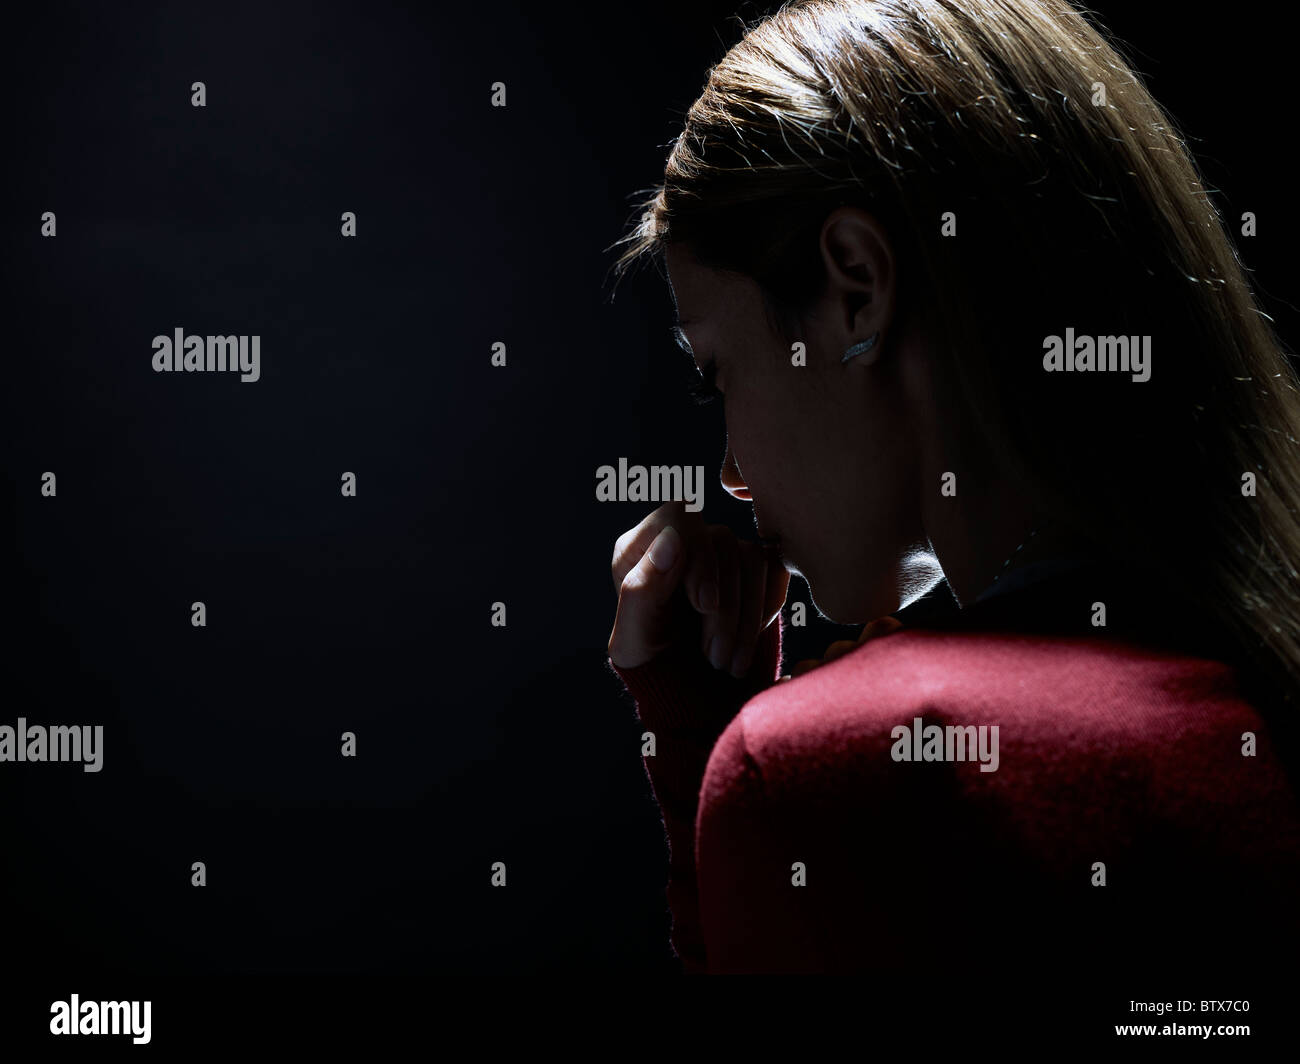 pensive woman on black background, representing the concept of anonymity Stock Photo